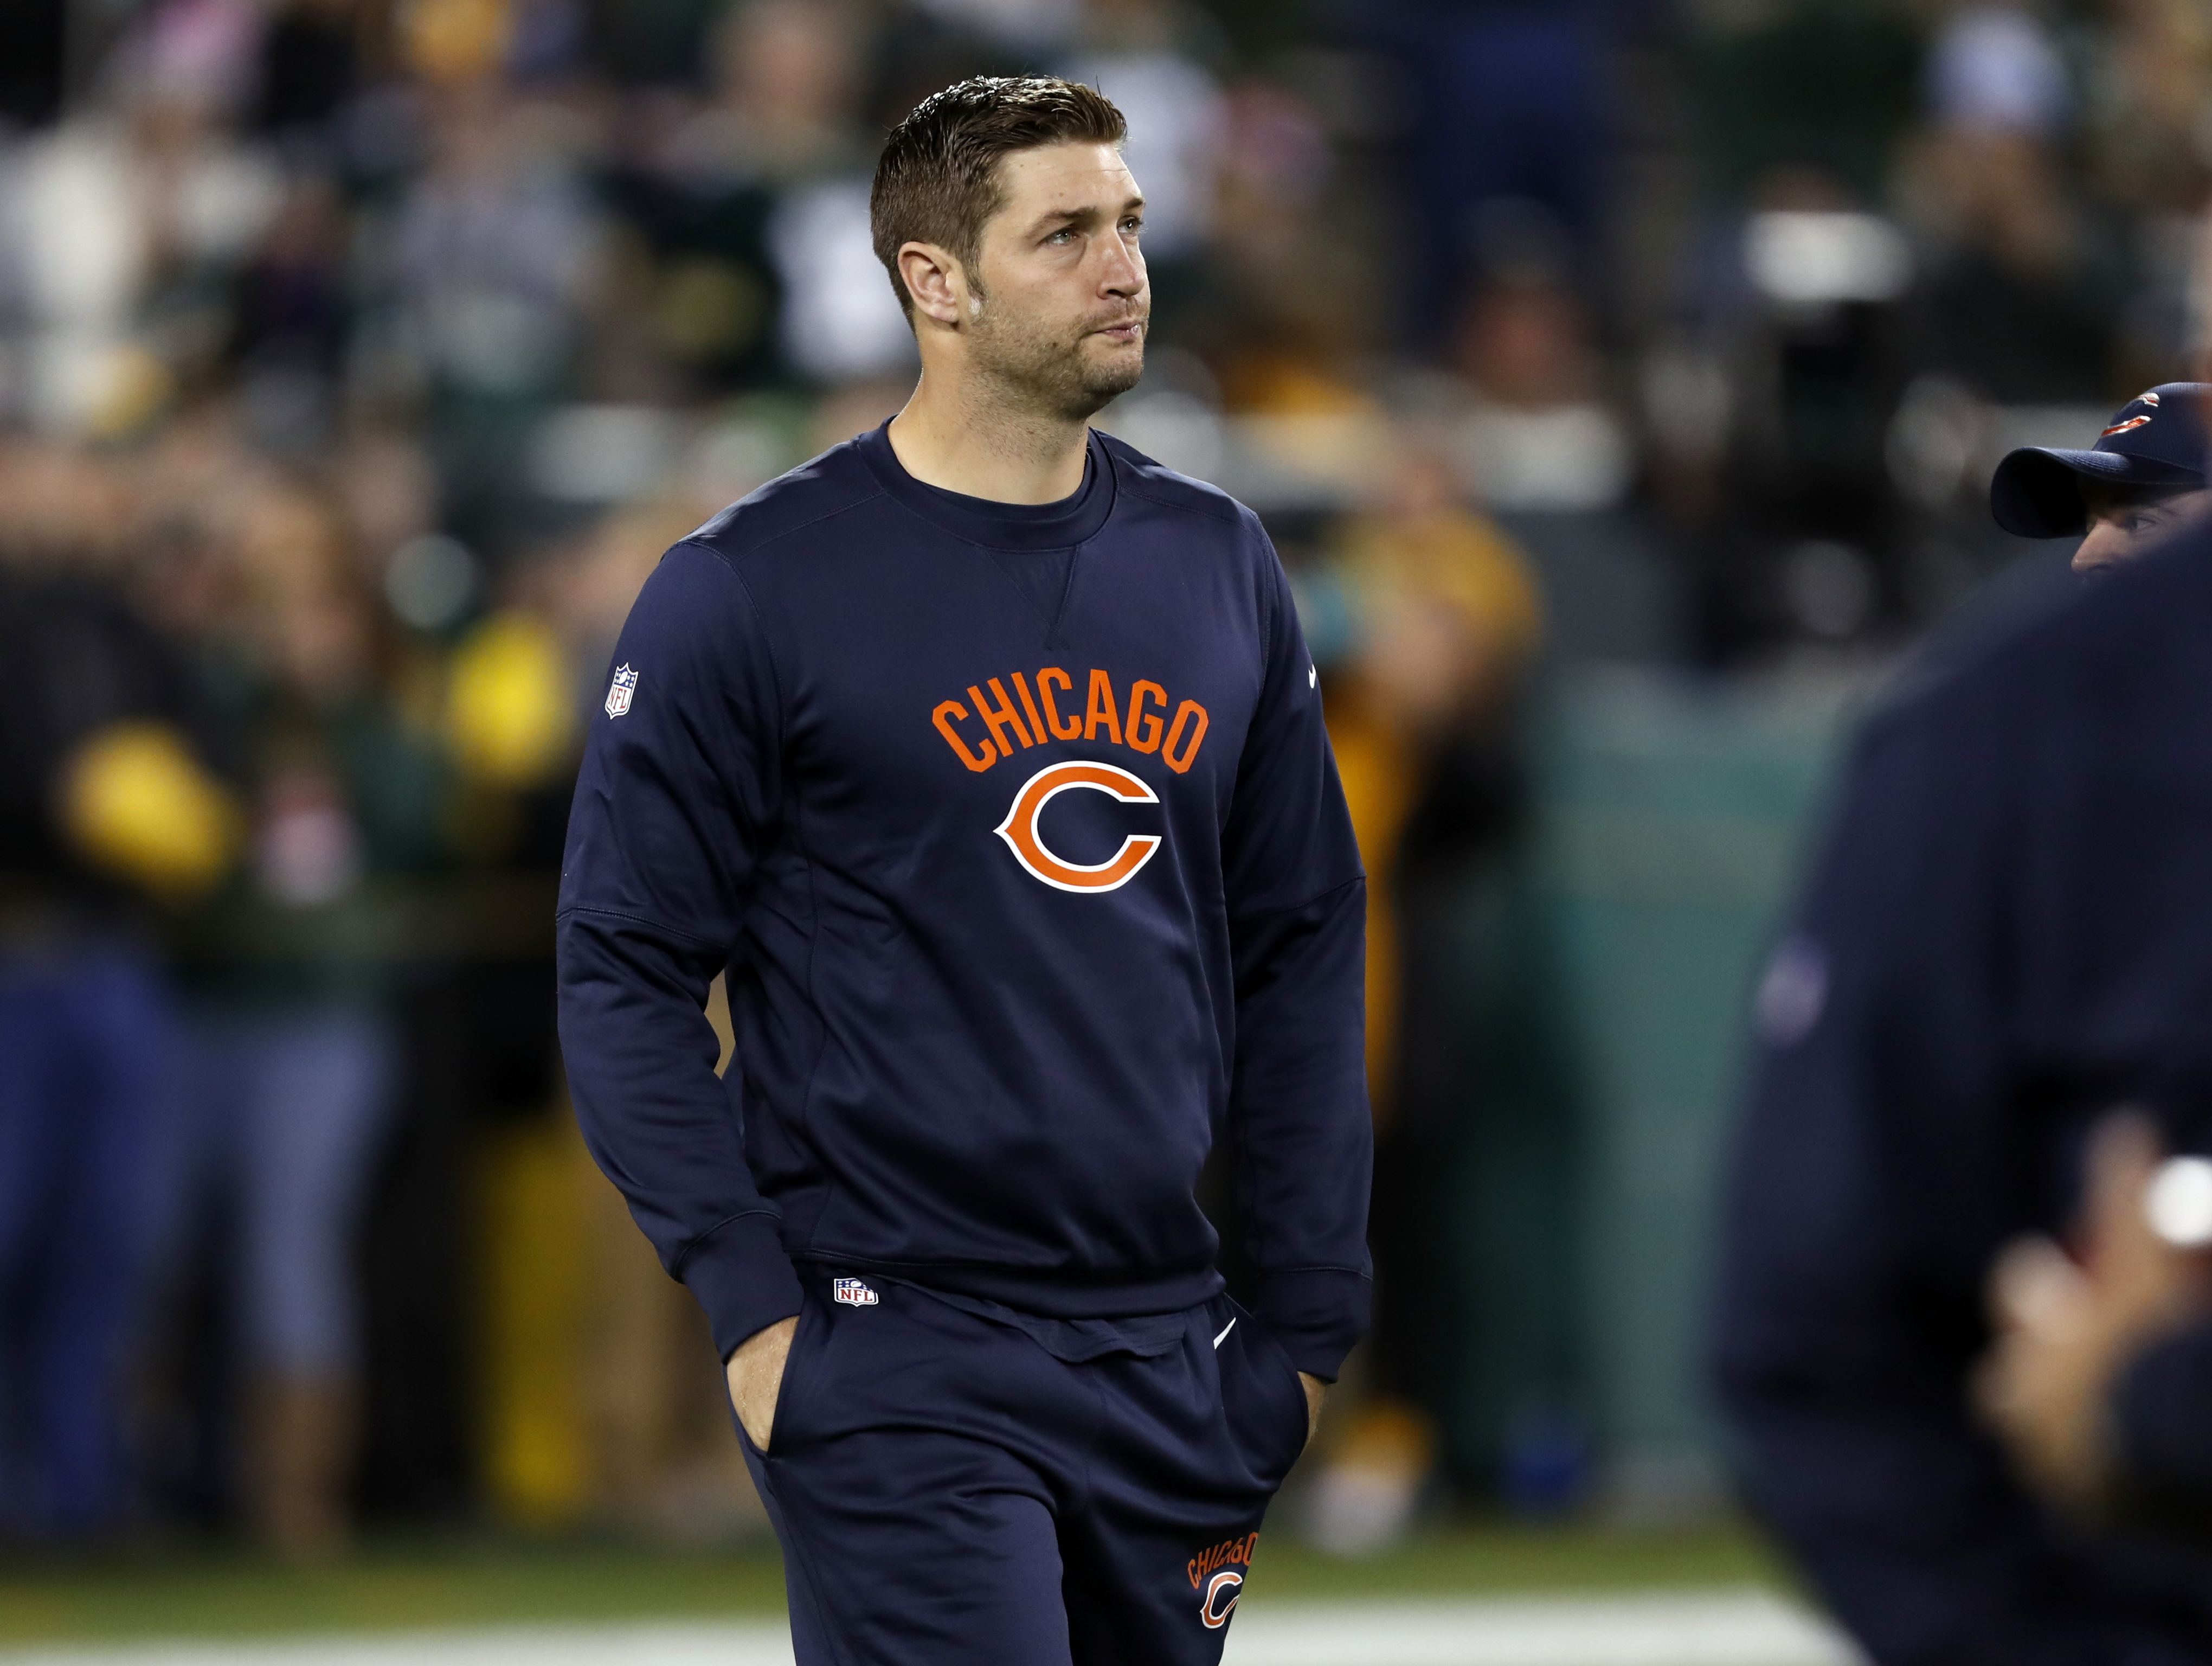 Chicago Bears quarterback Jay Cutler walks around the field before an NFL football game against the Green Bay Packers, Thursday, Oct. 20, 2016, in Green Bay, Wis. (AP Photo/Matt Ludtke)